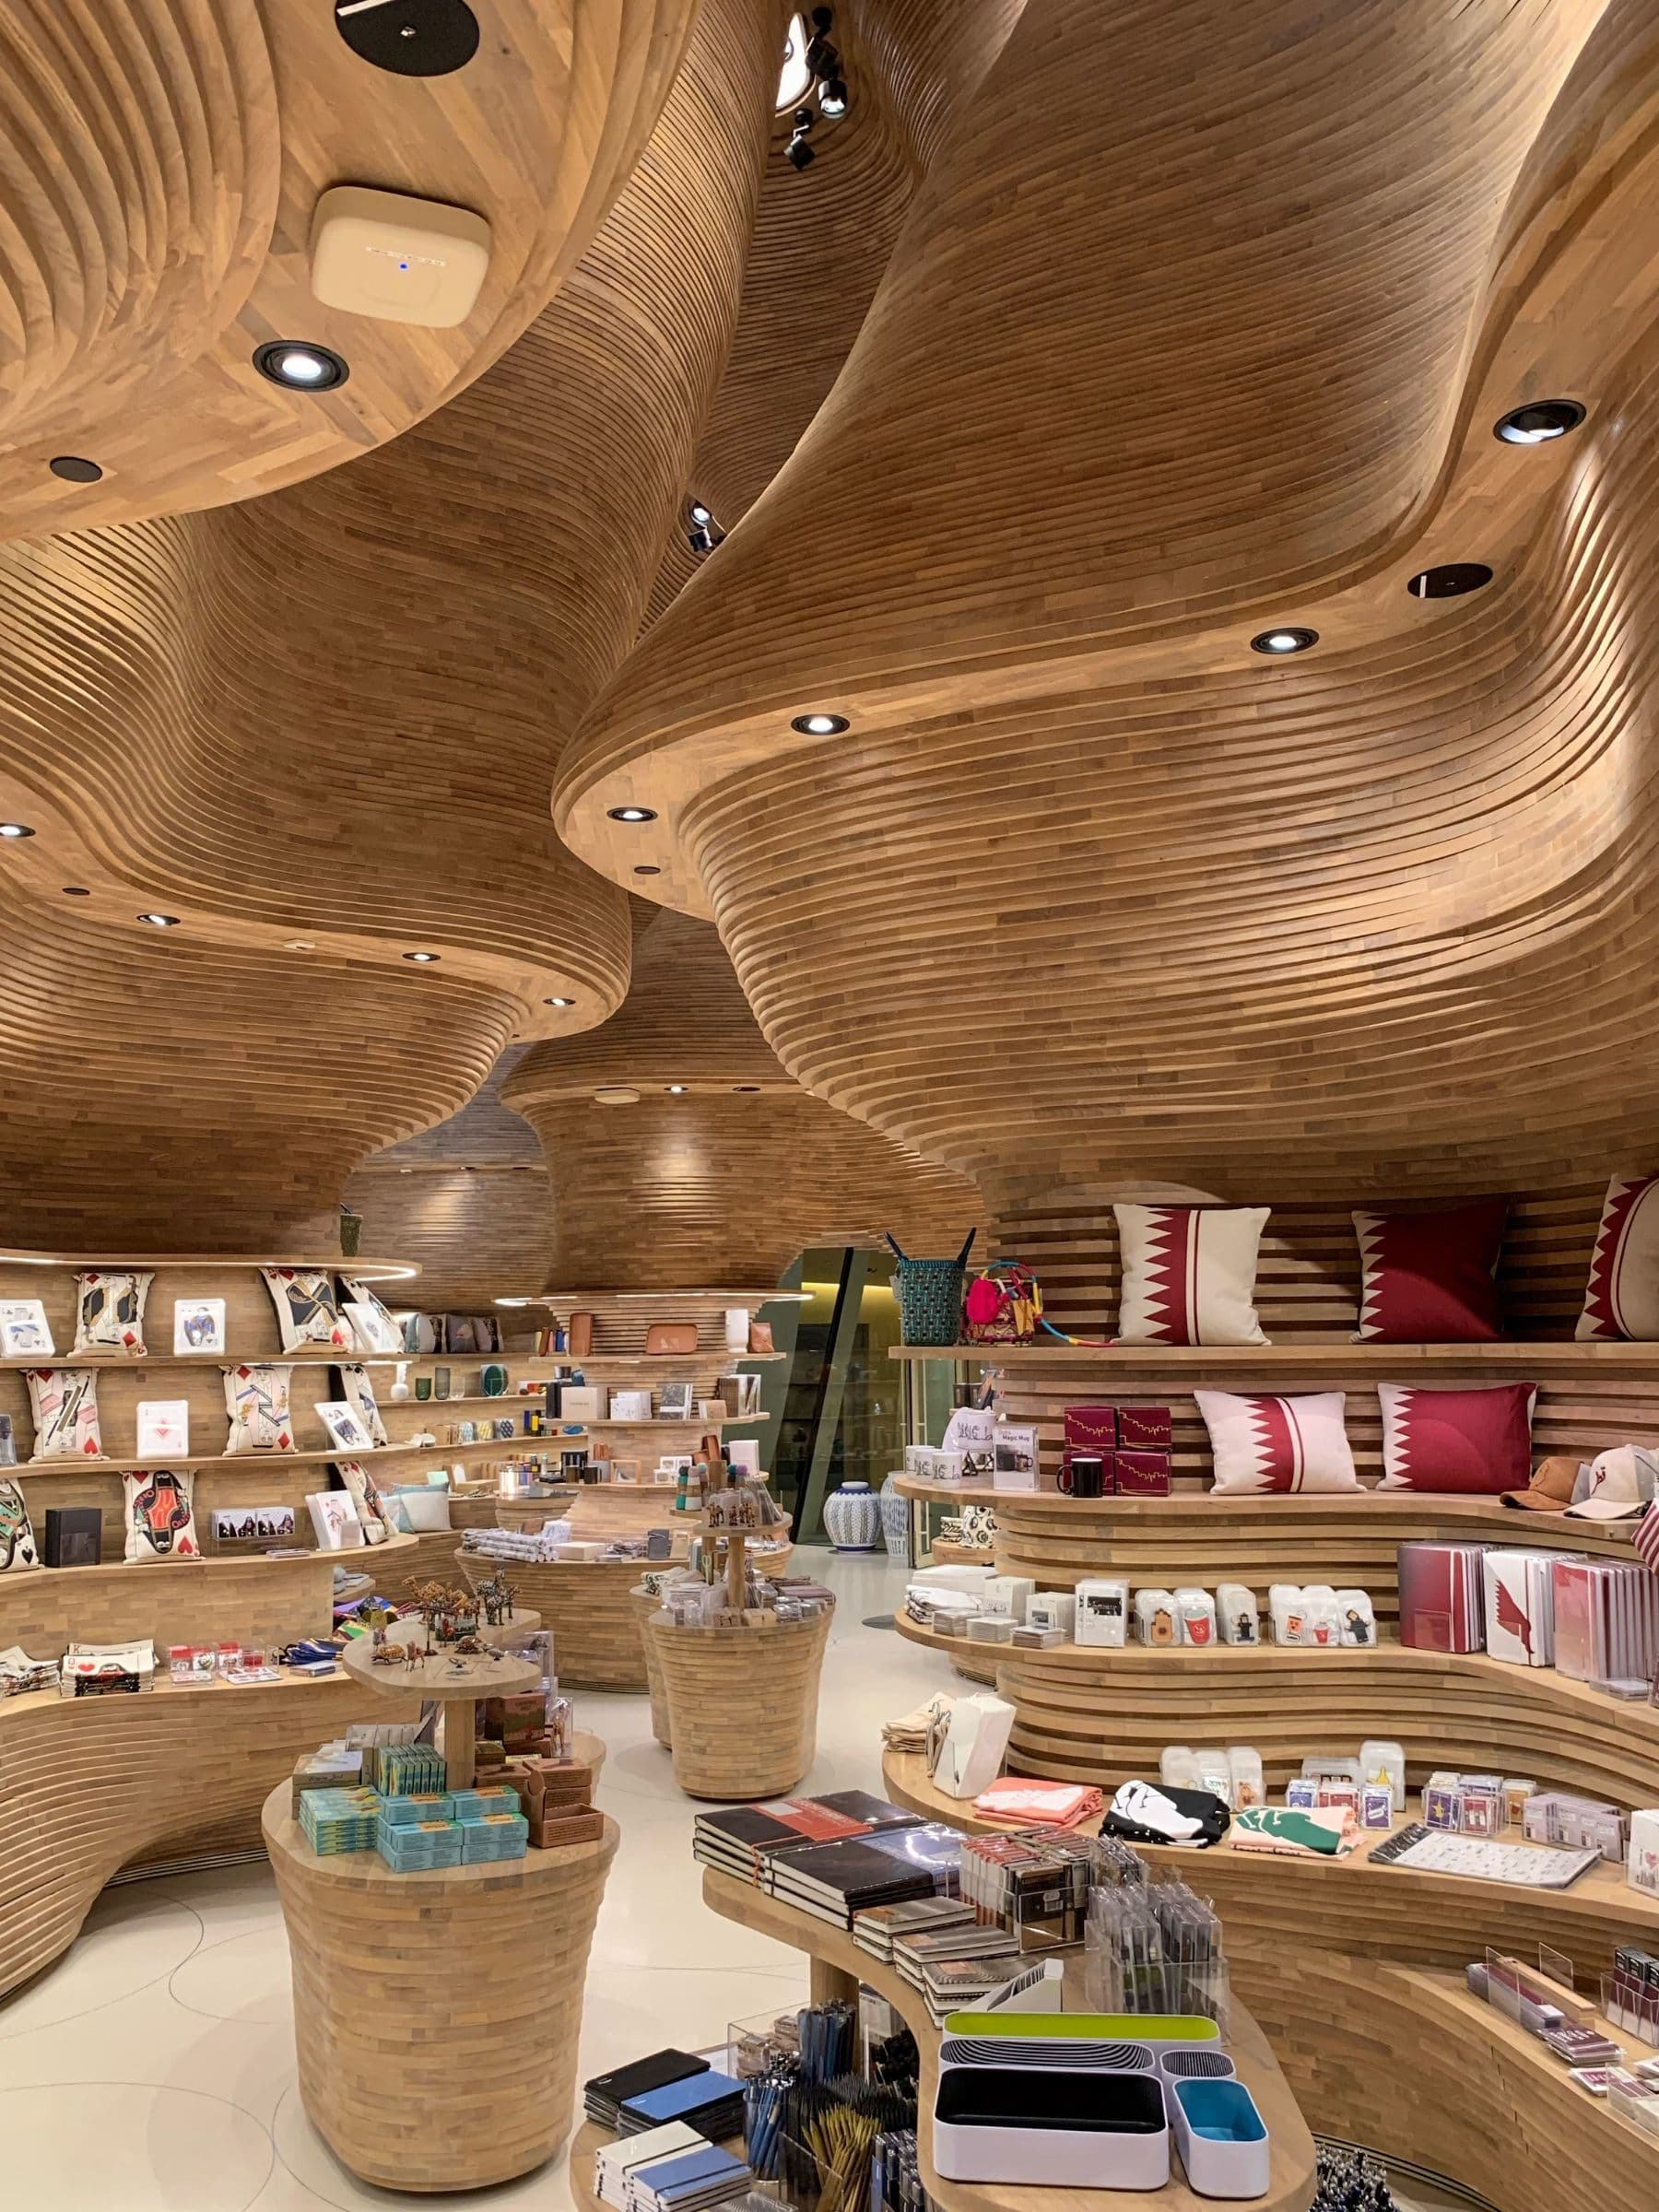 A cave in Qatar inspired the timber walls of the museum's shops, which have been designed by Koichi Takada Architects.